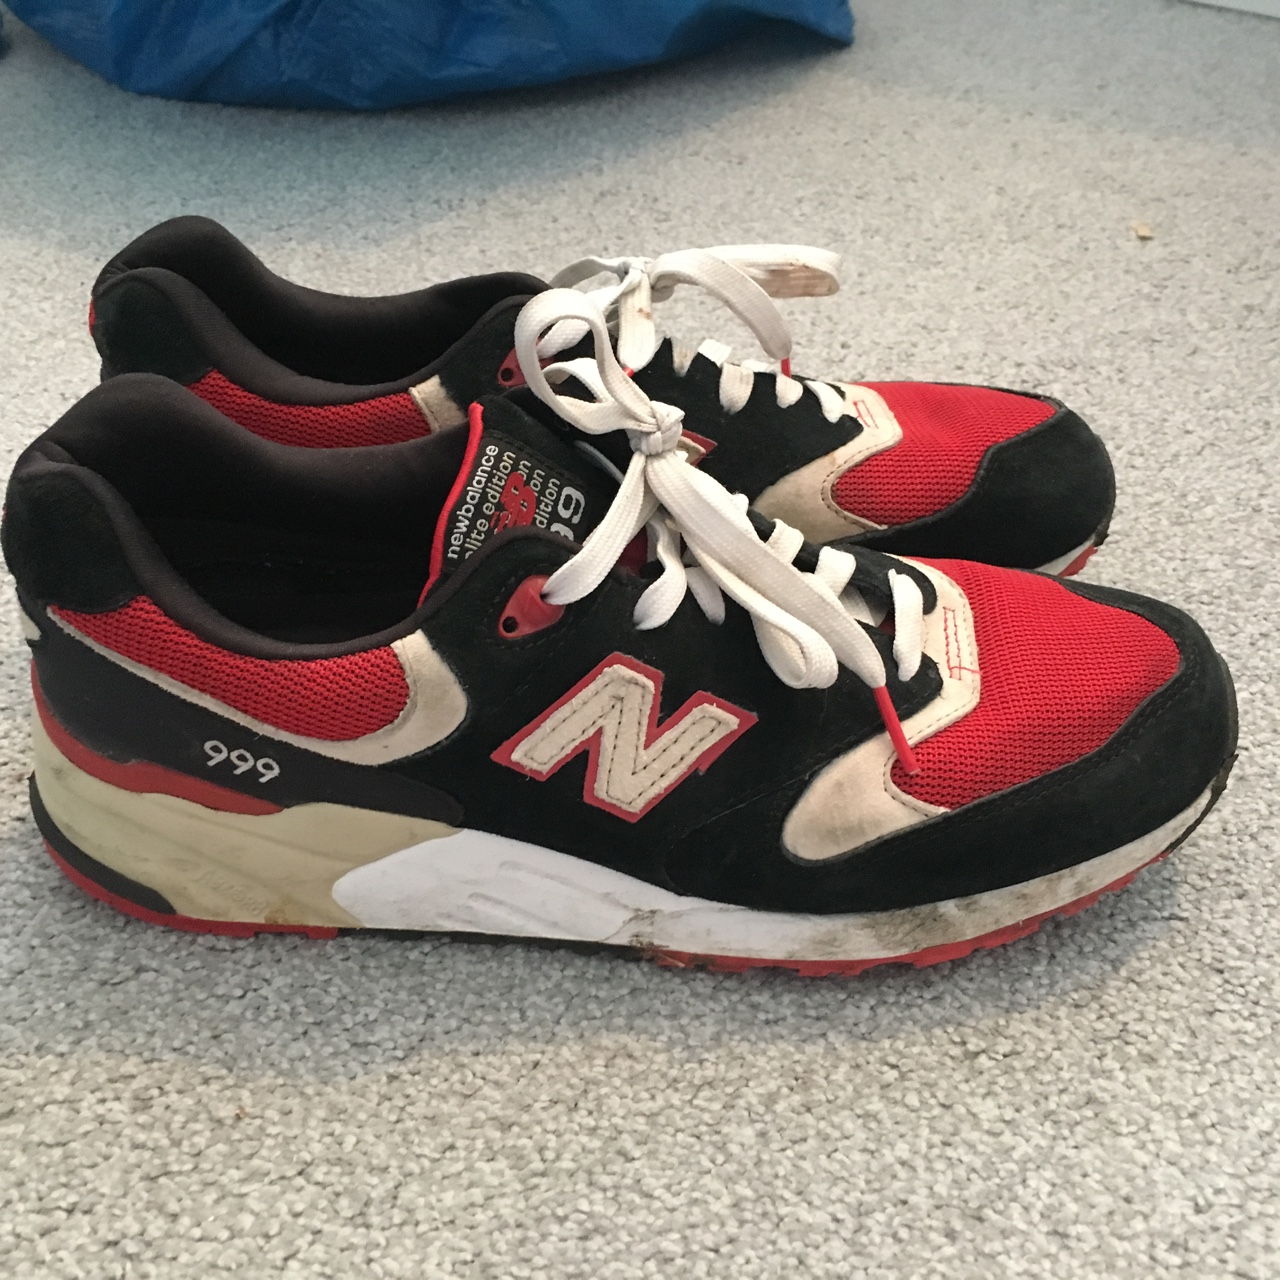 huge selection of b4945 258e6 New Balance 999 trainers. Limited edition only... - Depop